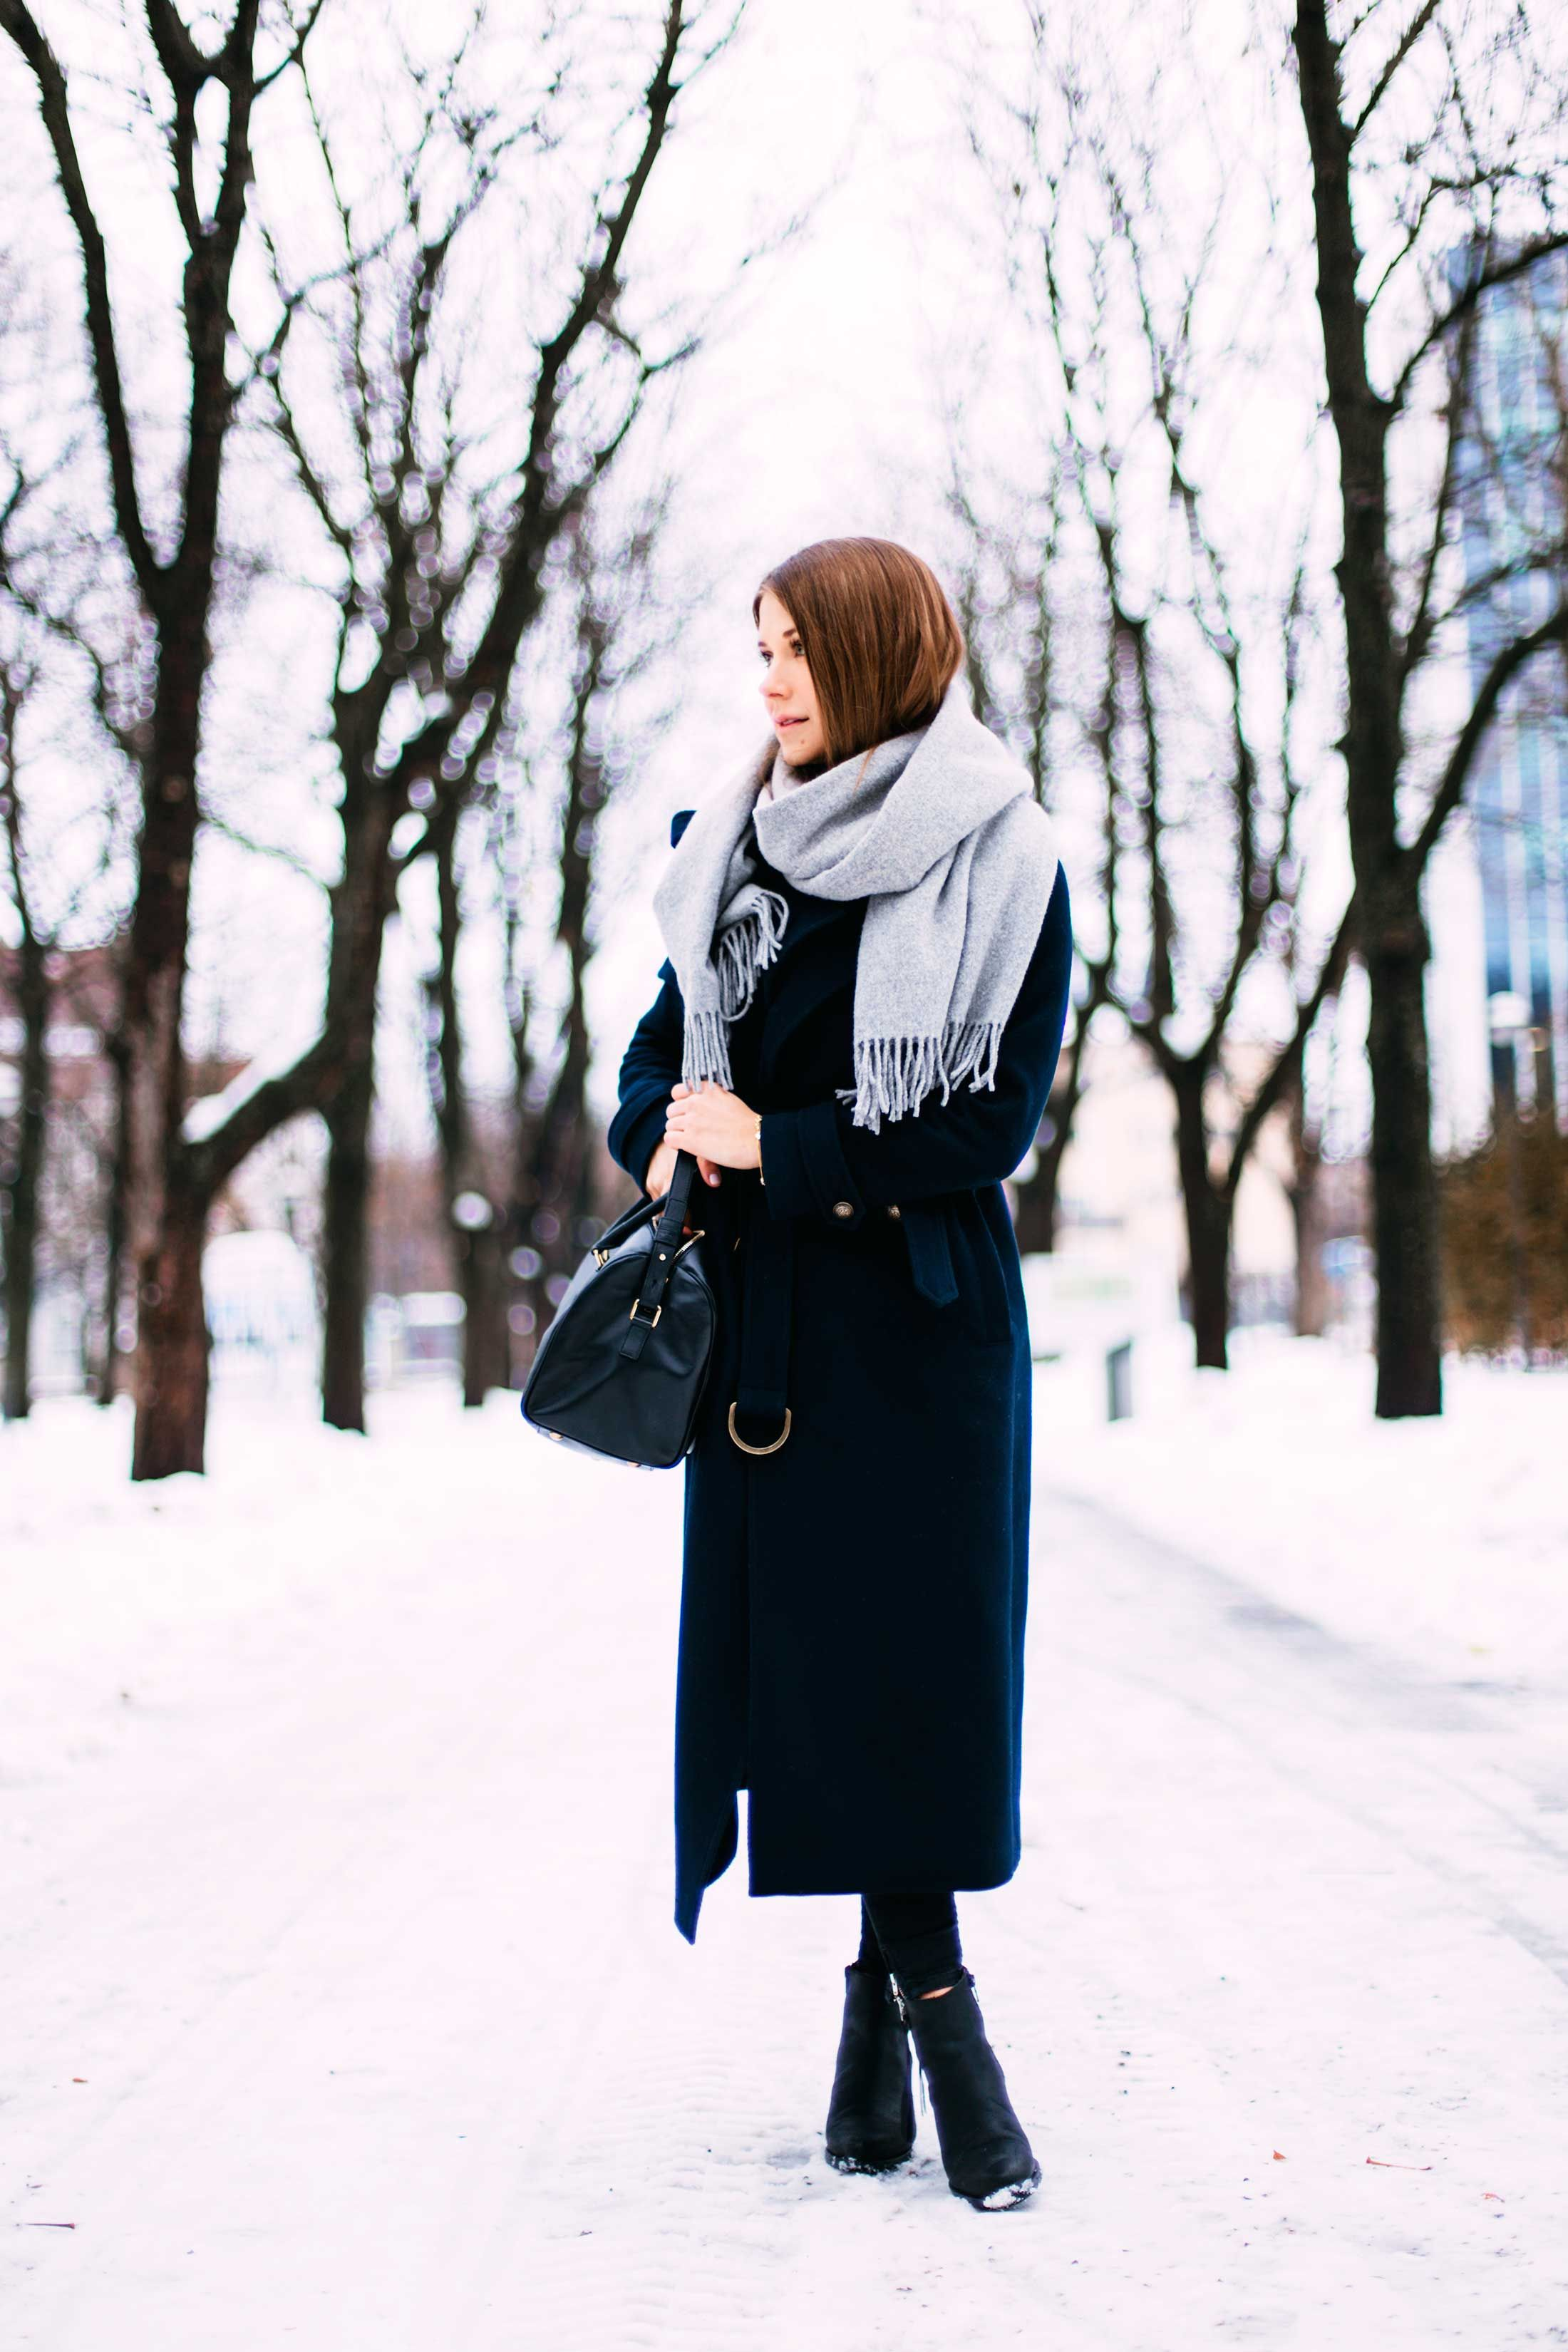 street  style  helsinki  finland  winter  cold  d33cd00d9d2